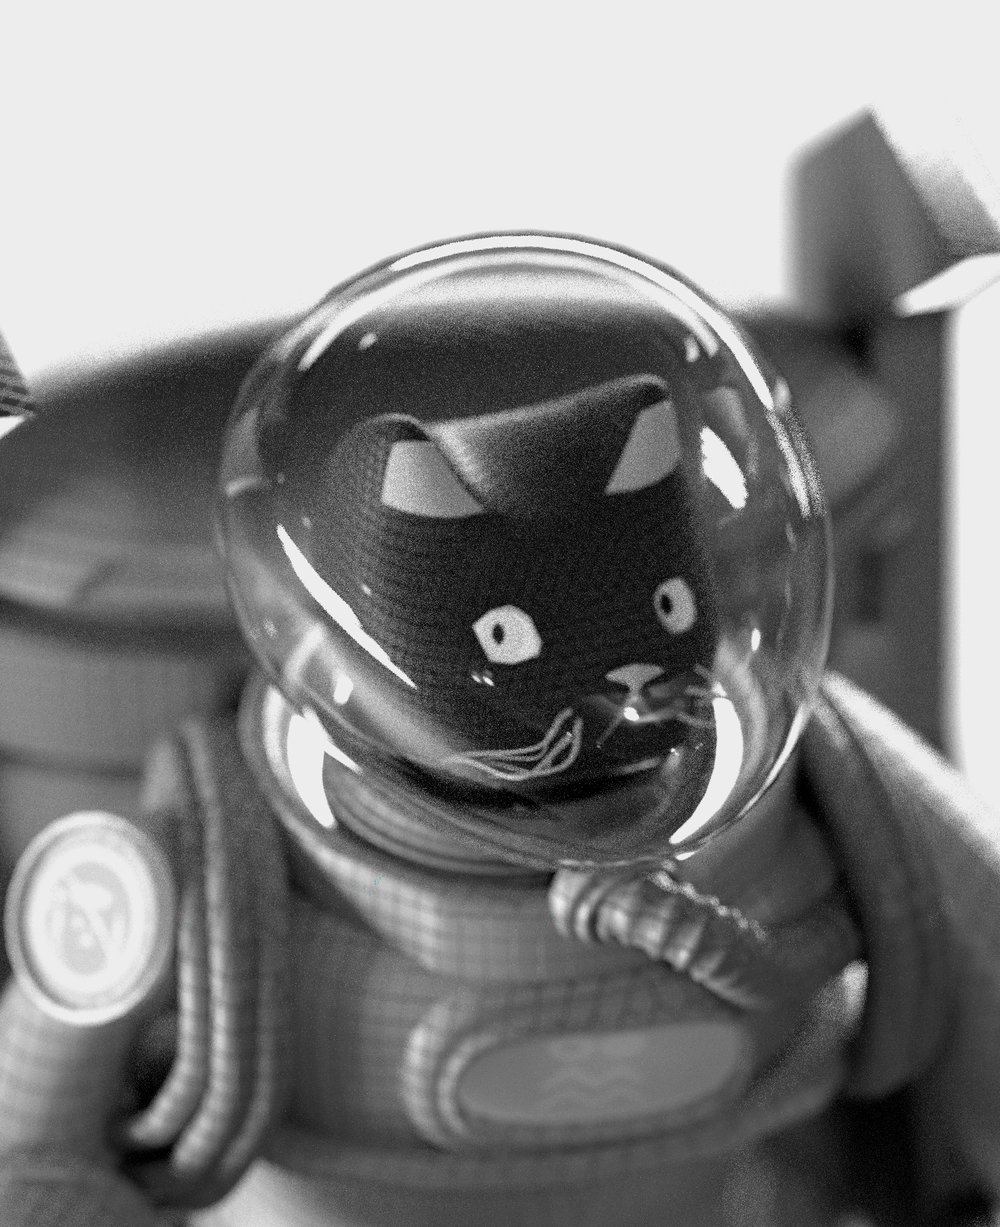 AstroCat - Astrocat is here from the future to warn us about the importance of every single human being on the planet doing their bit to live a sustainable lifestyle. The decisions you make today will have a far-reaching effect on all of us tomorrow. Join the #ArtxTechforGood movement today.